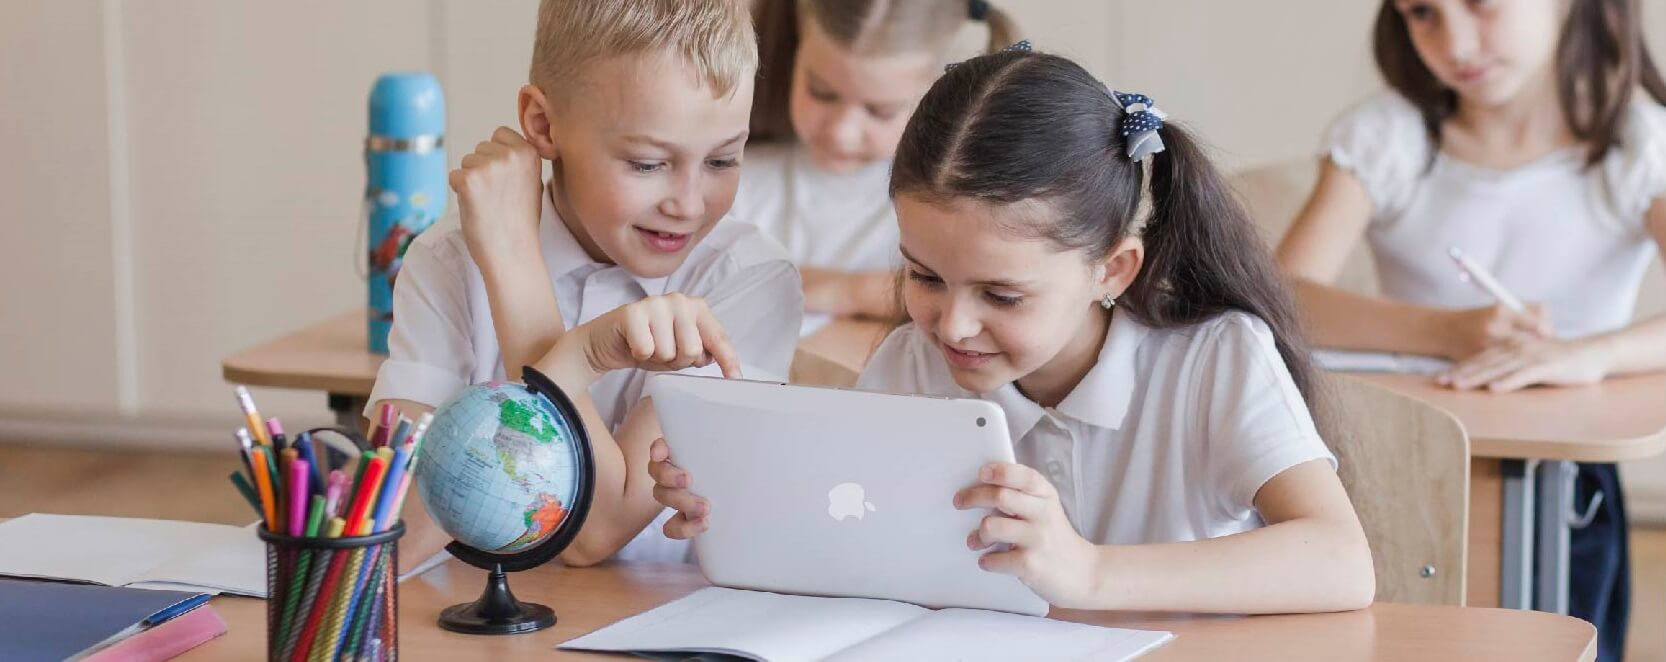 A Guide to iPad management in classrooms